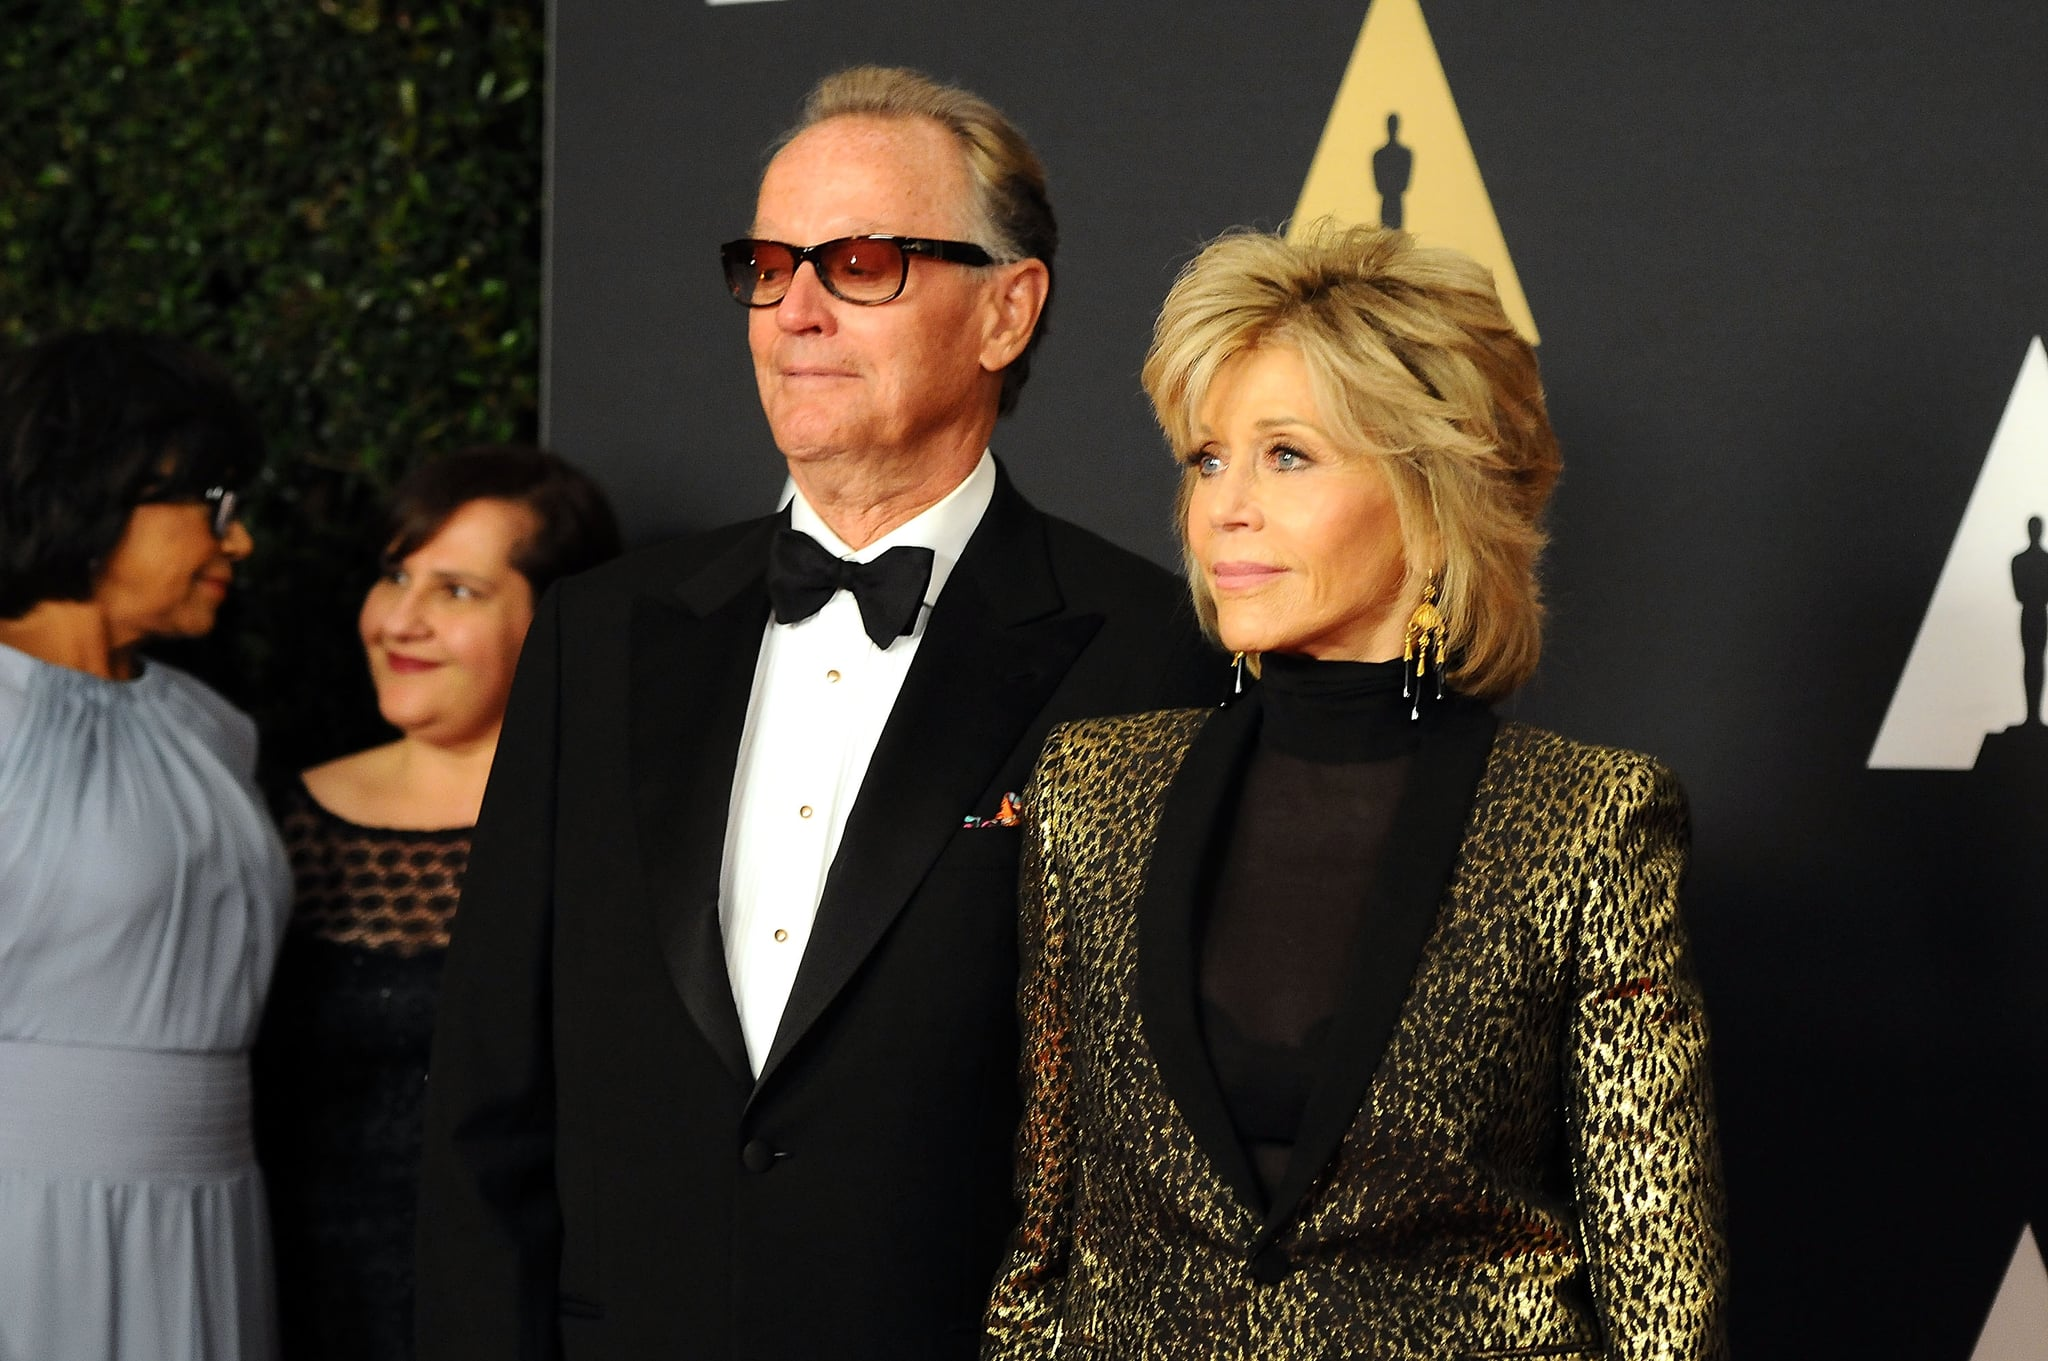 HOLLYWOOD, CA - NOVEMBER 14:  Peter Fonda and Jane Fond attend the Academy of Motion Picture Arts and Sciences' 7th Annual Governors Awards at The Ray Dolby Ballroom at Hollywood & Highland Center on November 14, 2015 in Hollywood, California.  (Photo by Araya Diaz/WireImage)